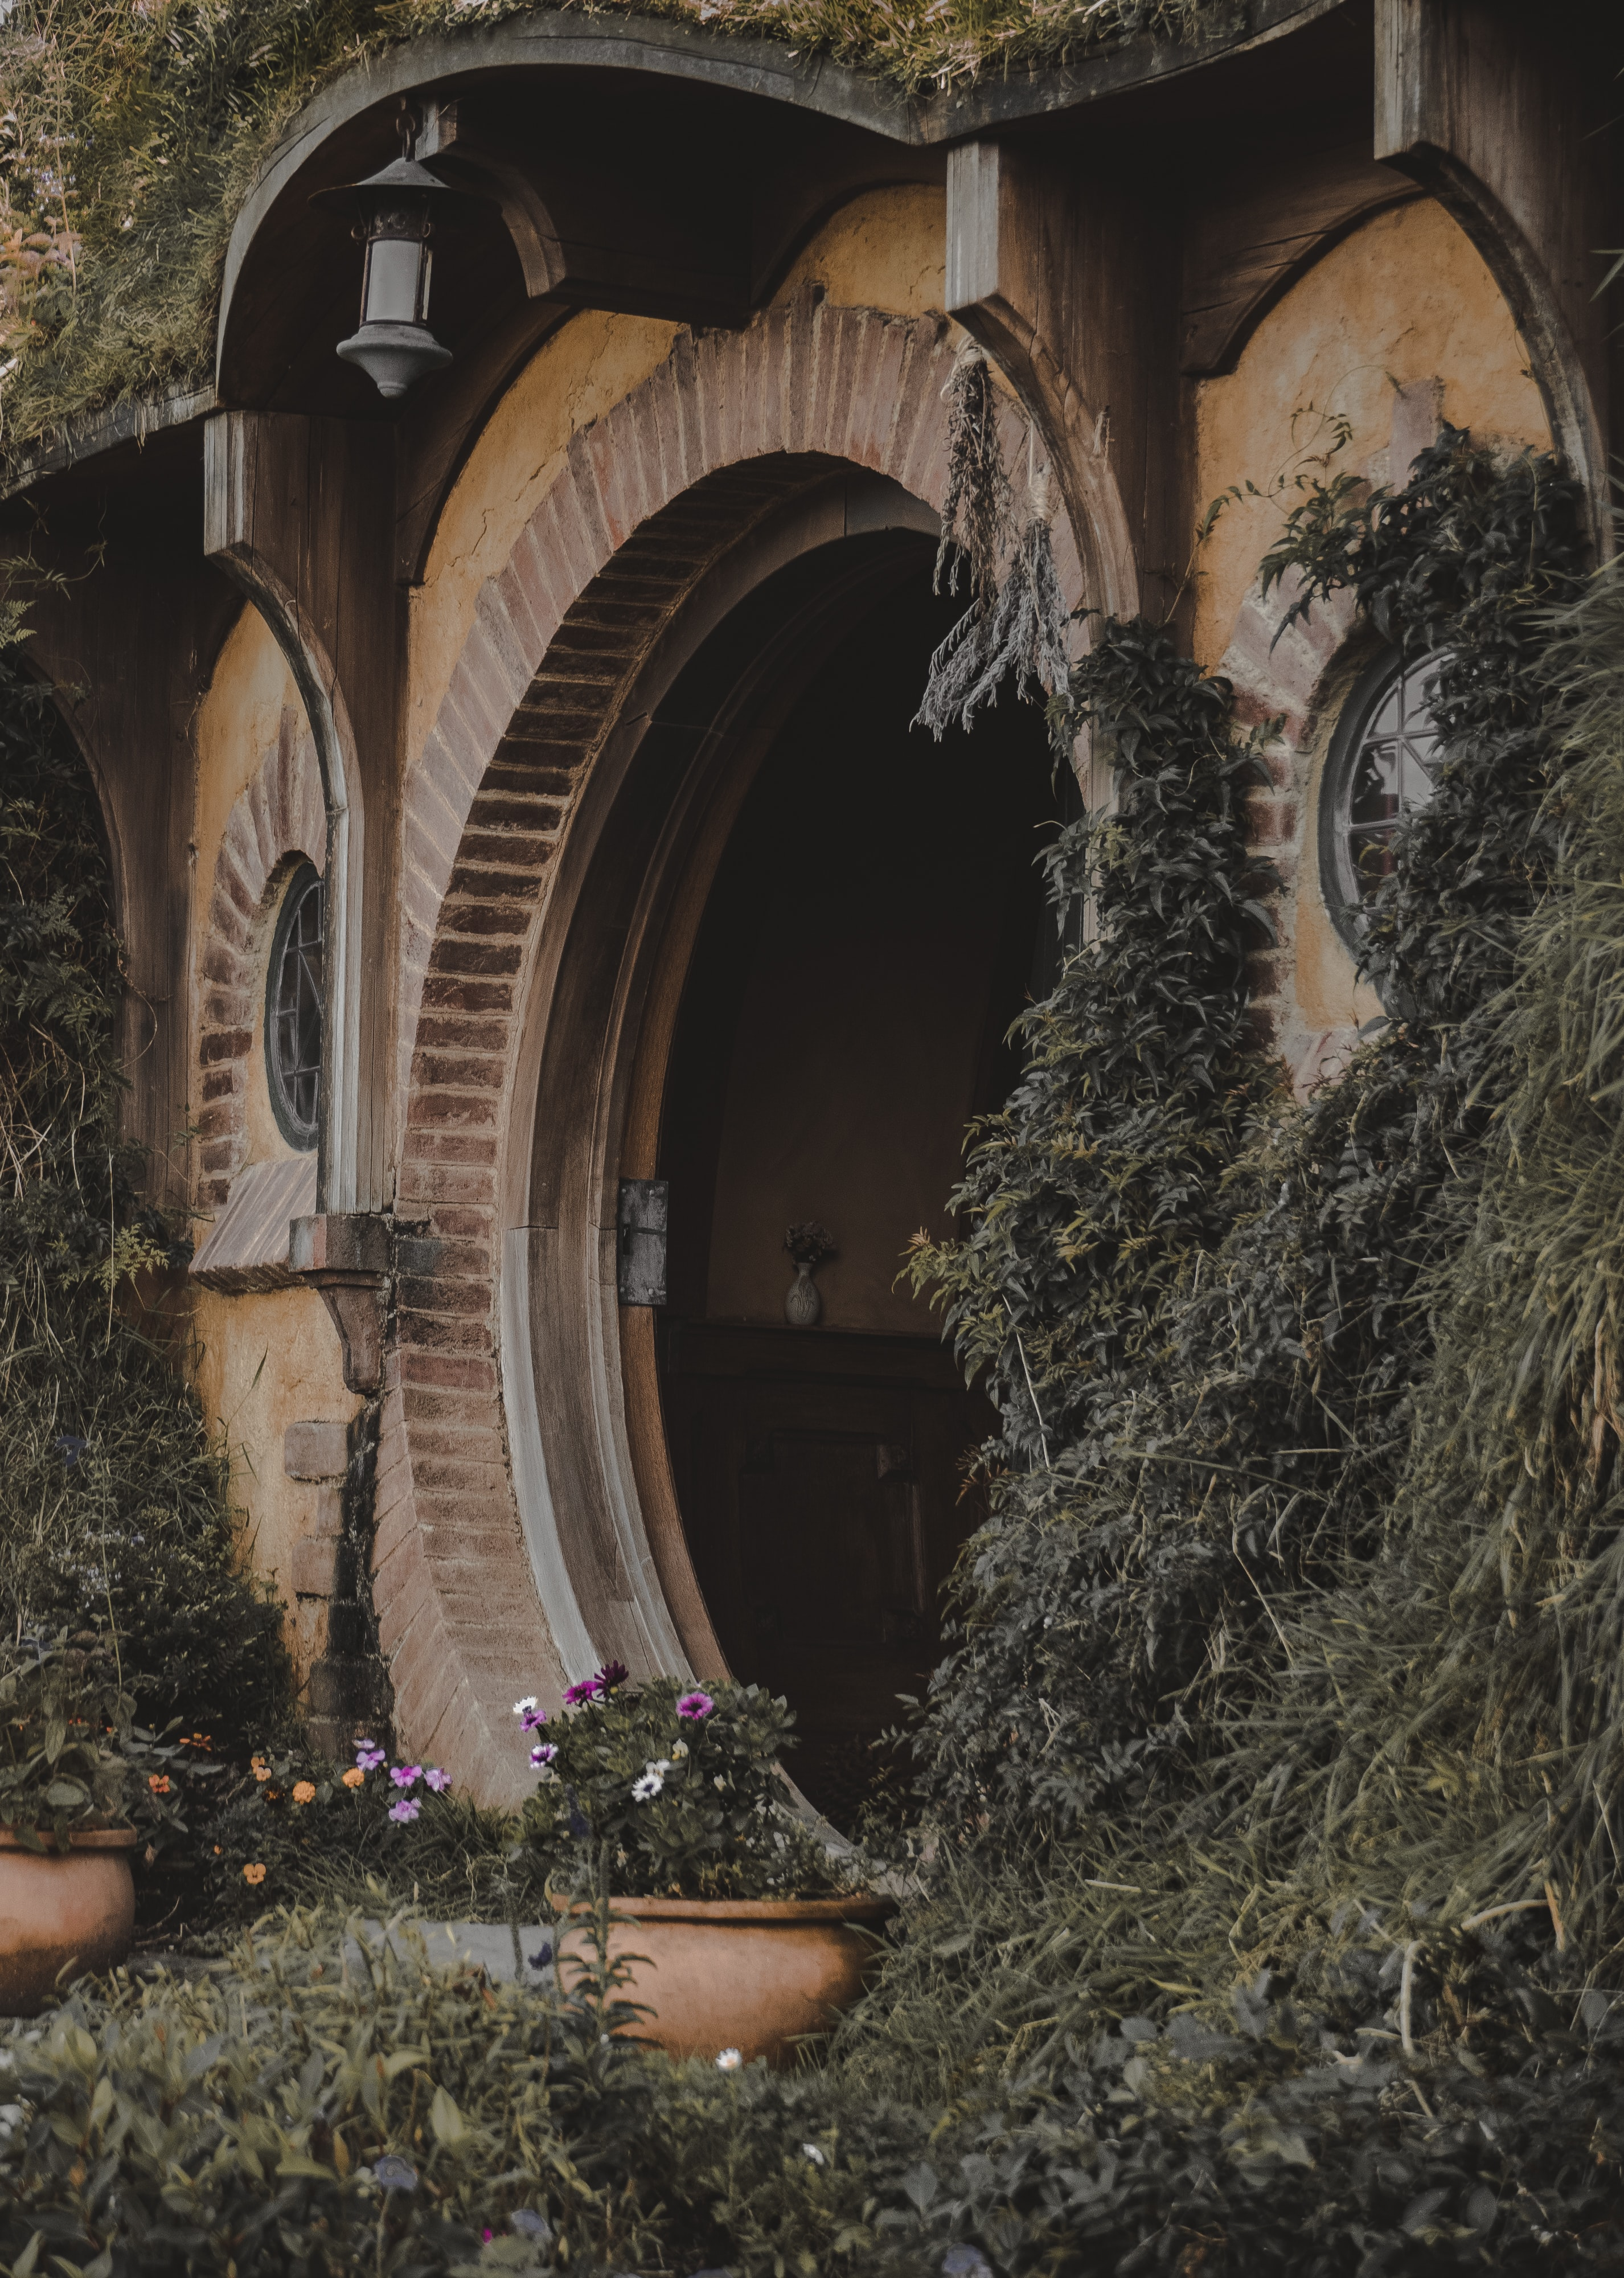 brown wooden archway with grass plant